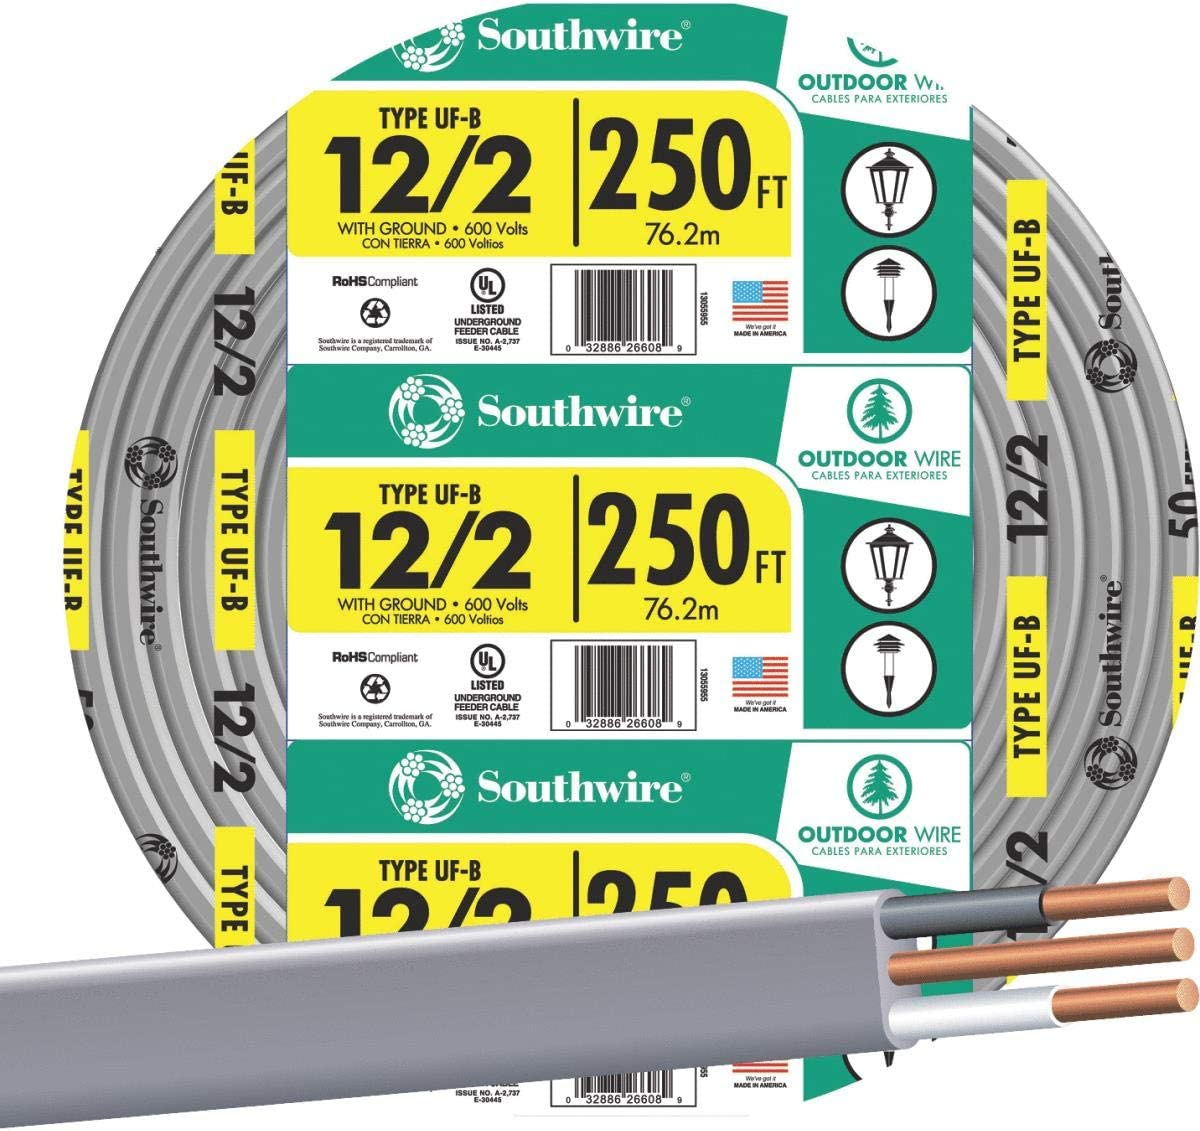 Southwire 13055955 250' 12-2 UFW/G WIRE, Gray